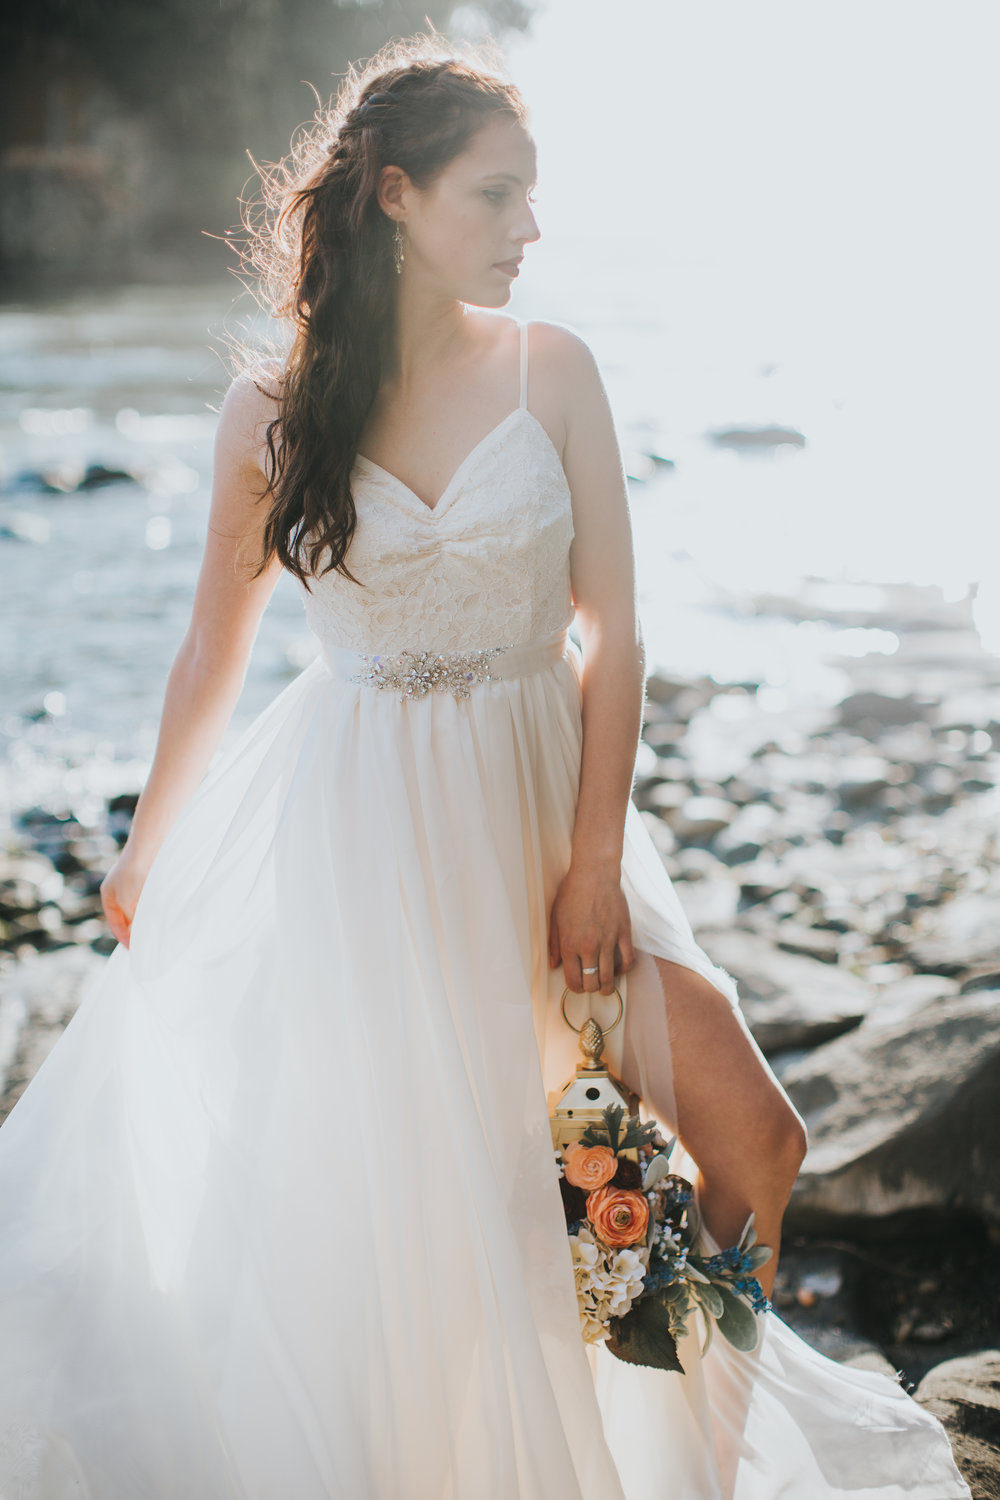 Port-Angeles-Salt-Creek-beach-wedding-bride-PNW-olympic-peninsula-photographer-Kayla-Dawn-Photography-outdoors-golden-hour-dancer-dress (6).jpg